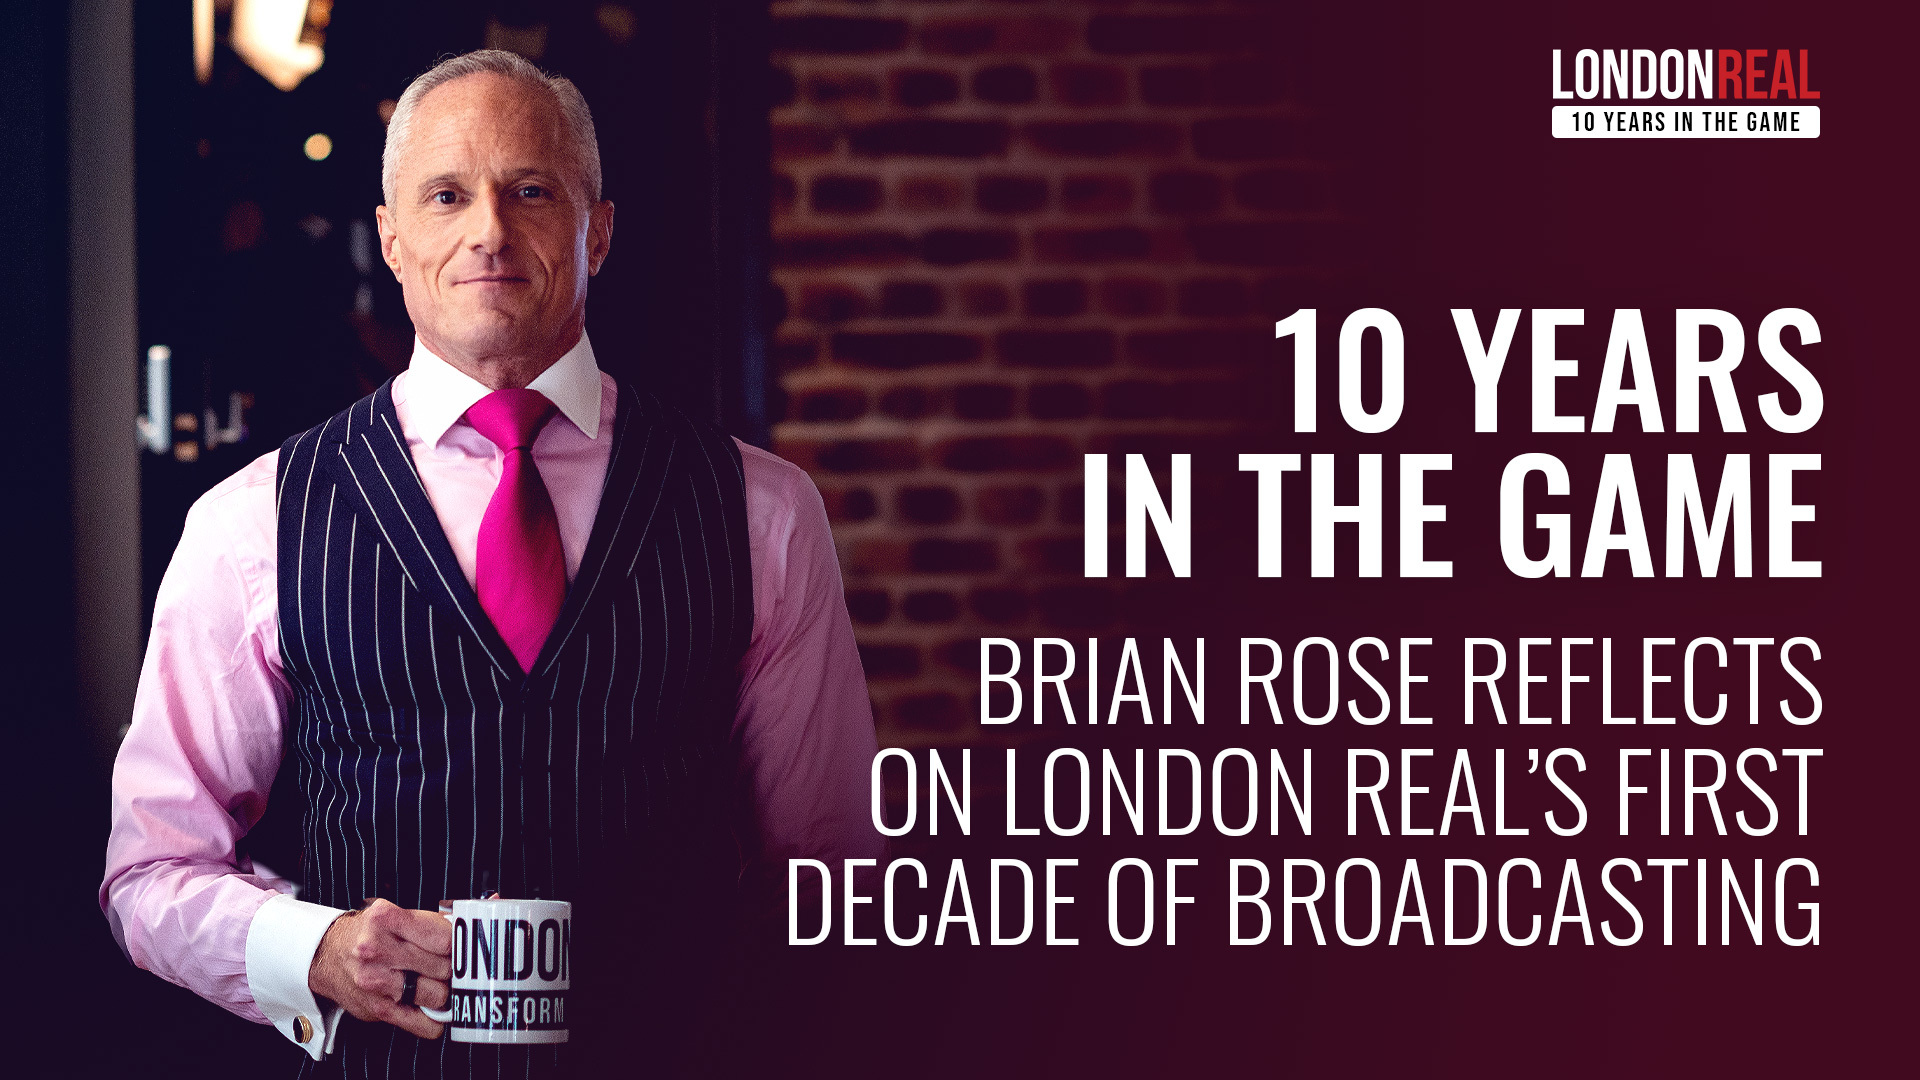 Brian Rose - London Real: 10 Years In The Game